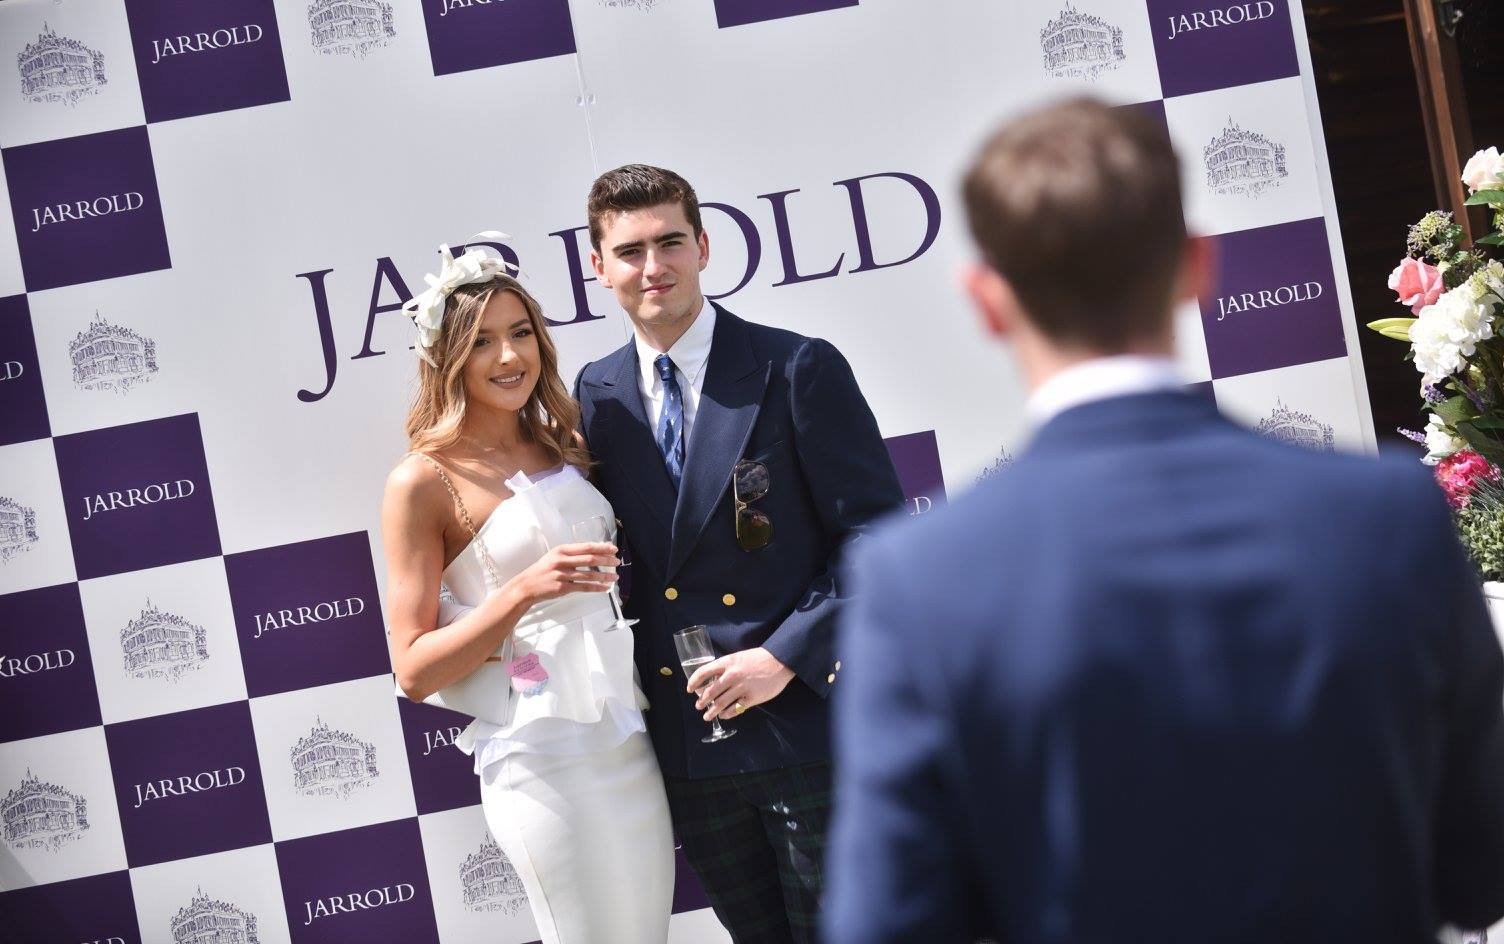 Jarrold Ladies Day | ENTRIES